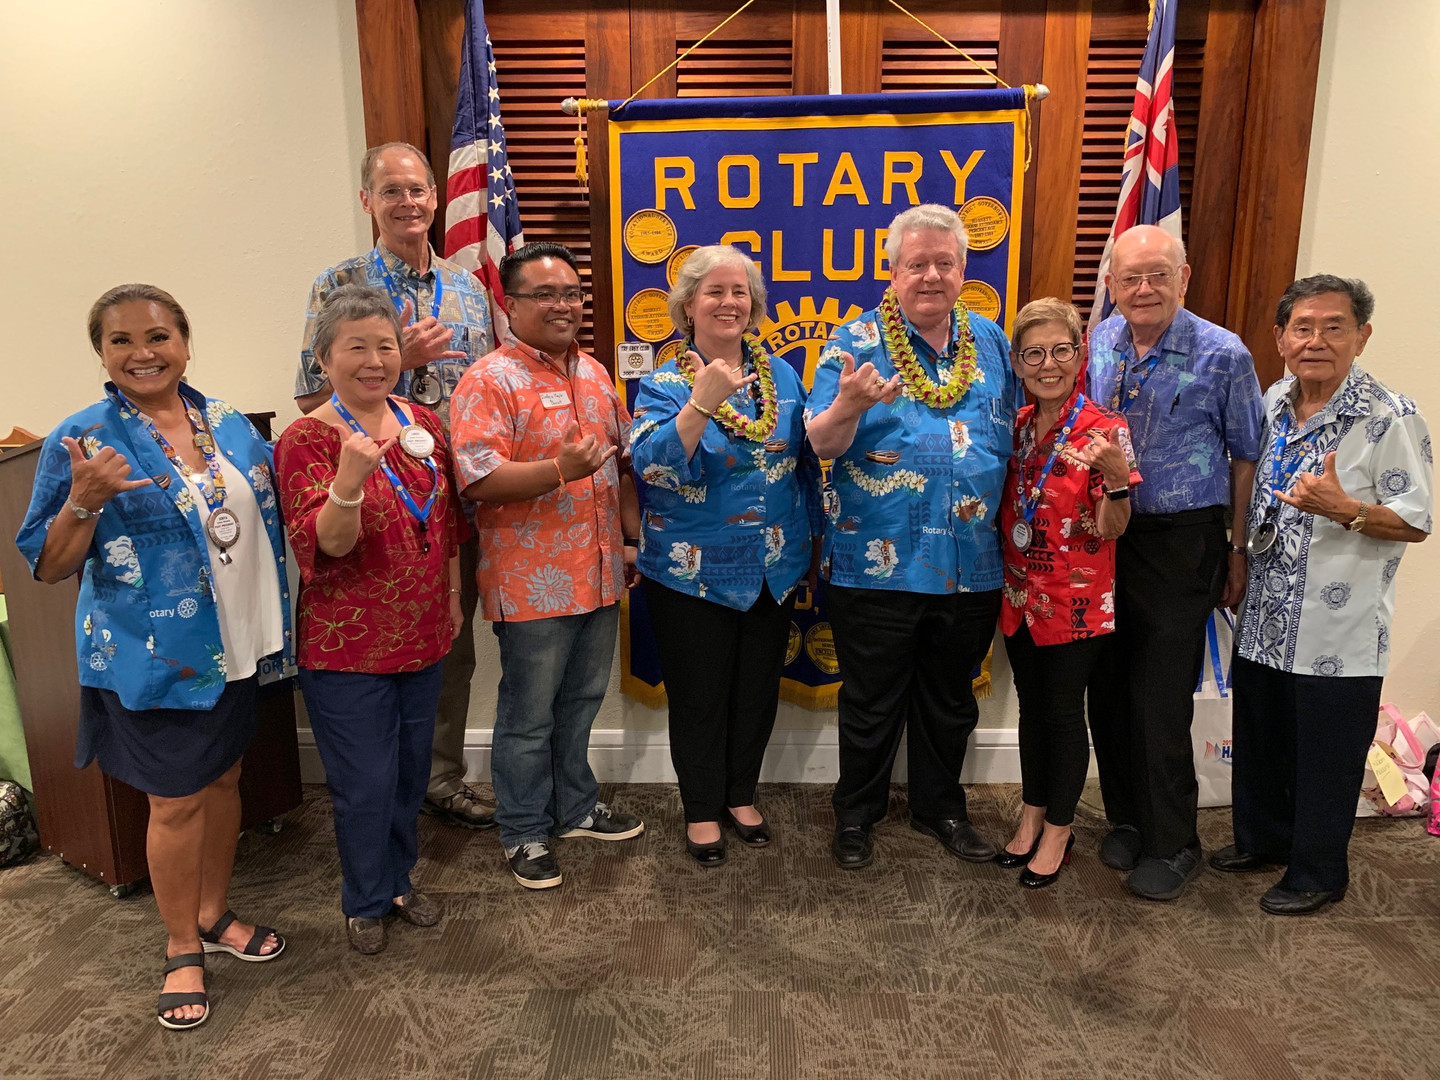 Club visit from 2019 Rotary Int'l Pres Mark Maloney and wife Gay Maloney